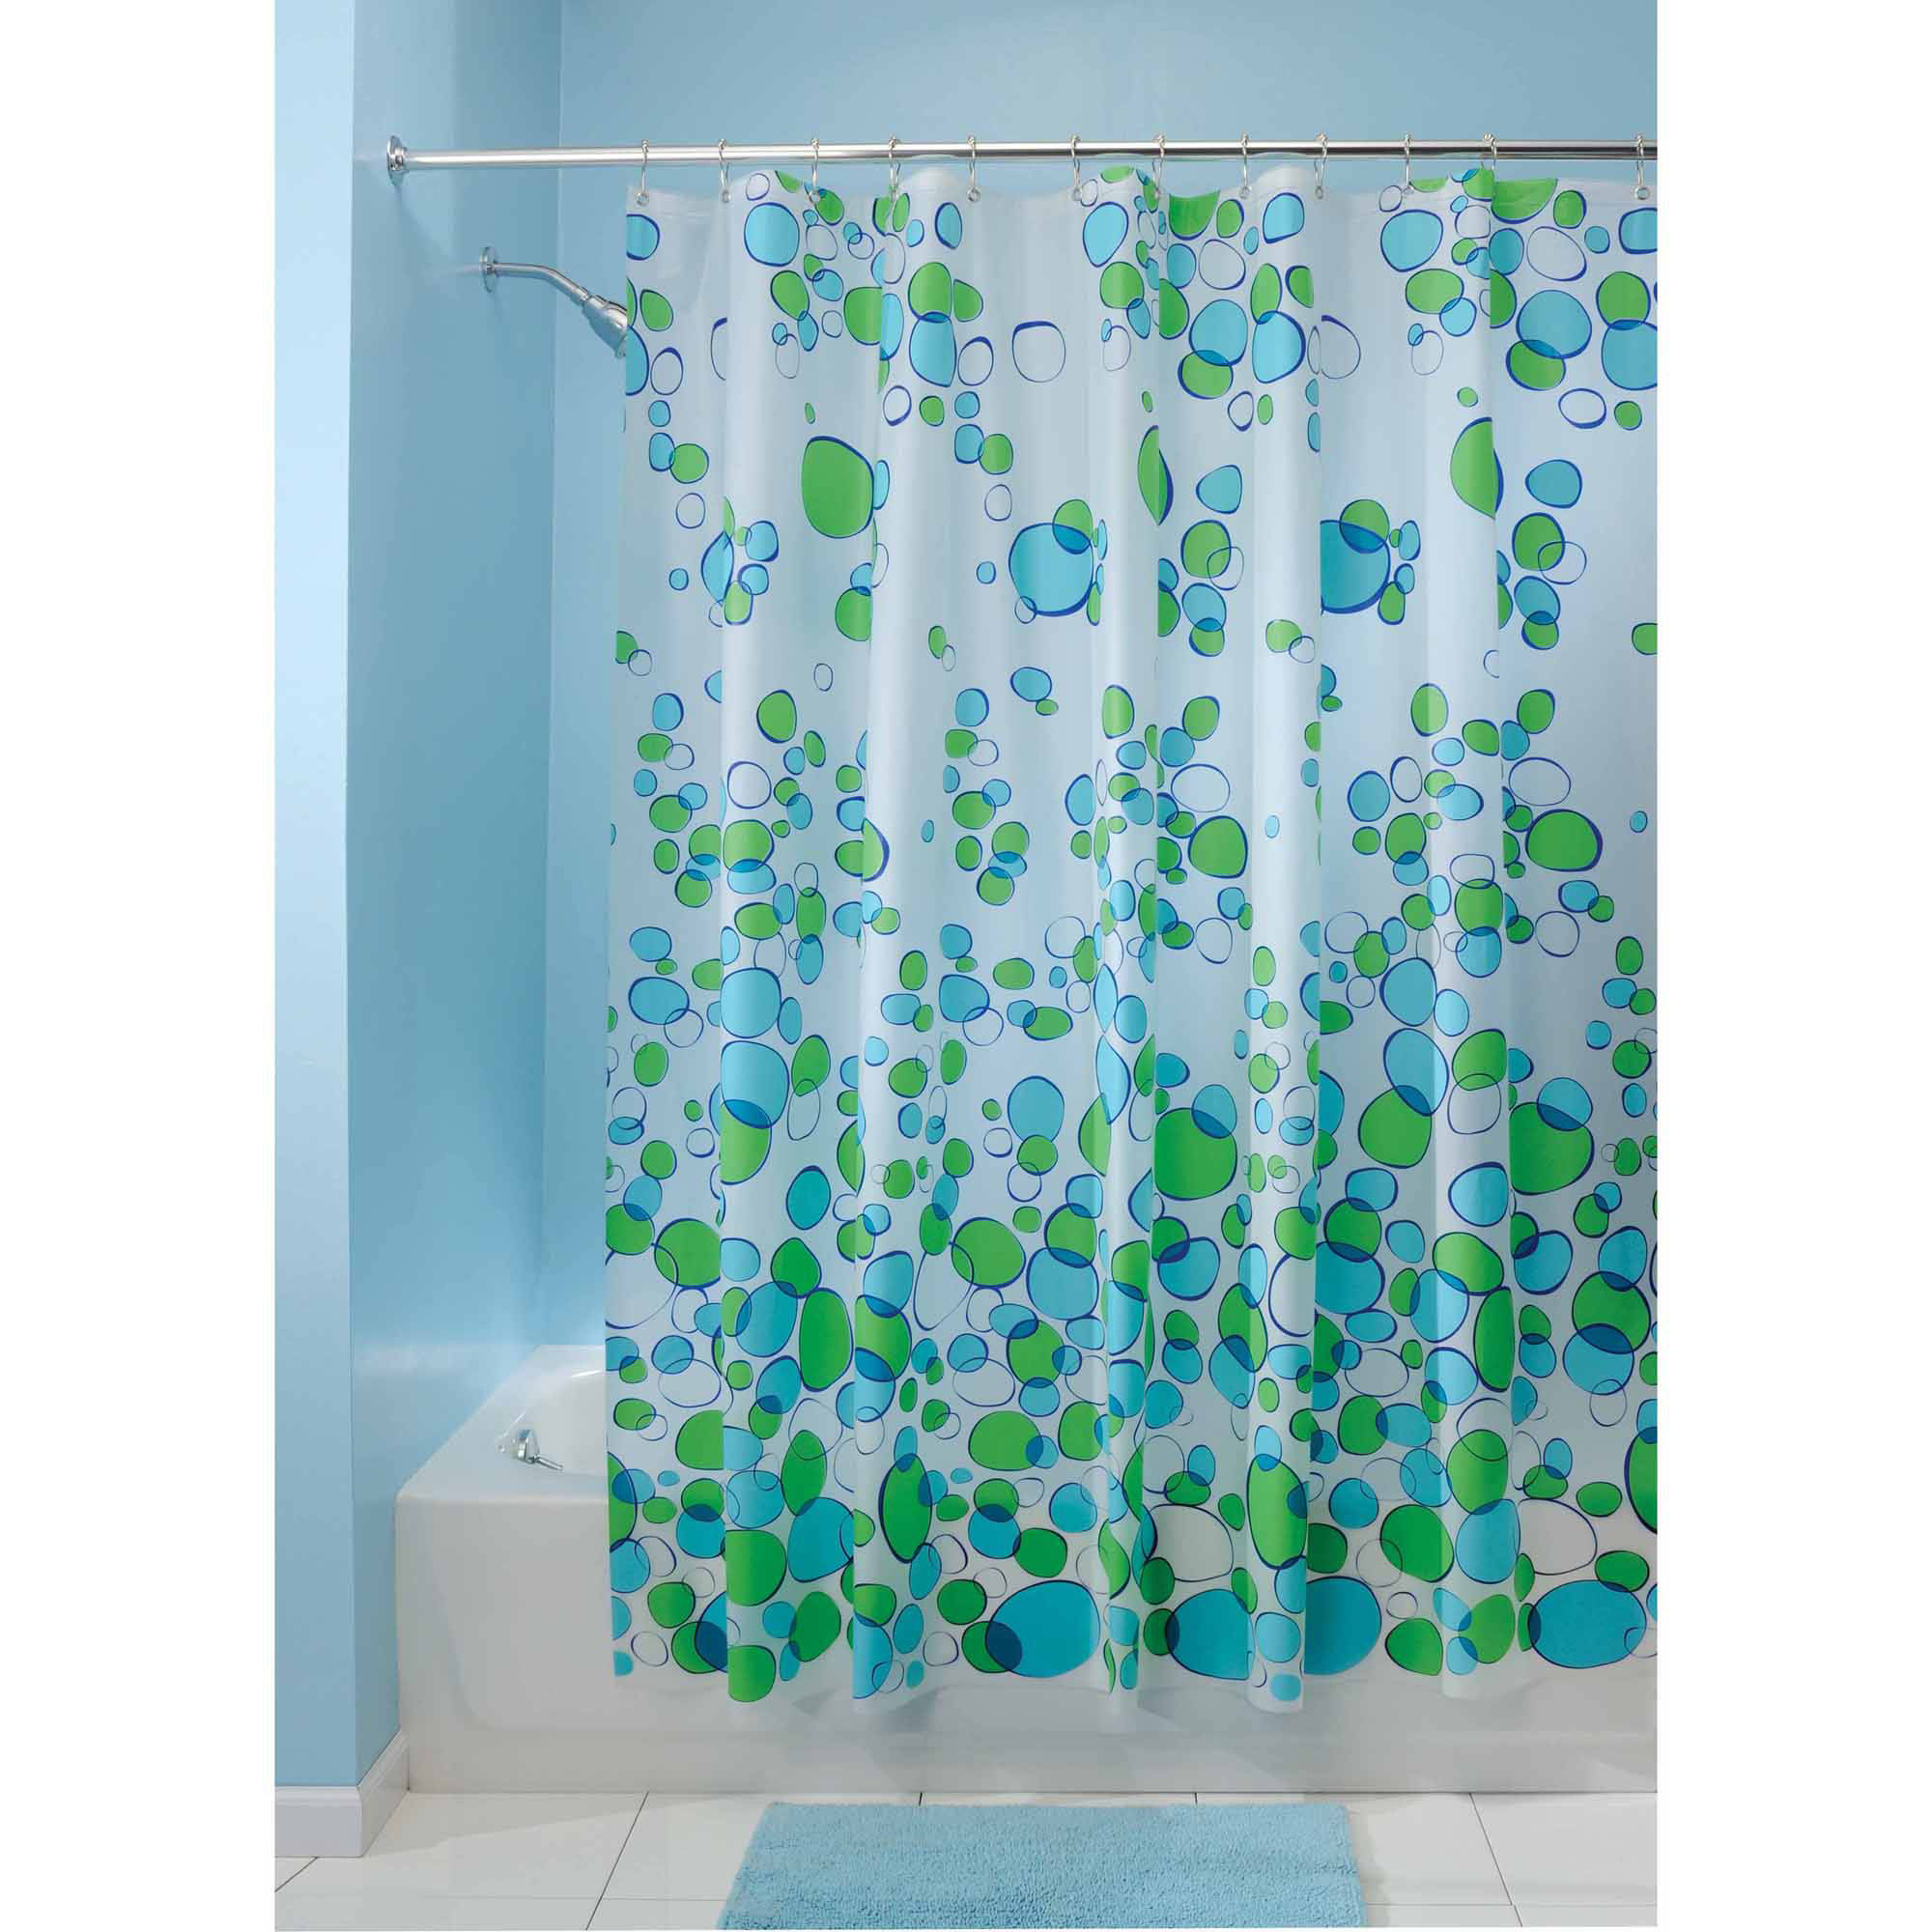 "InterDesign Bubblz Frosted PEVA Shower Curtain, 72"" x 72"""